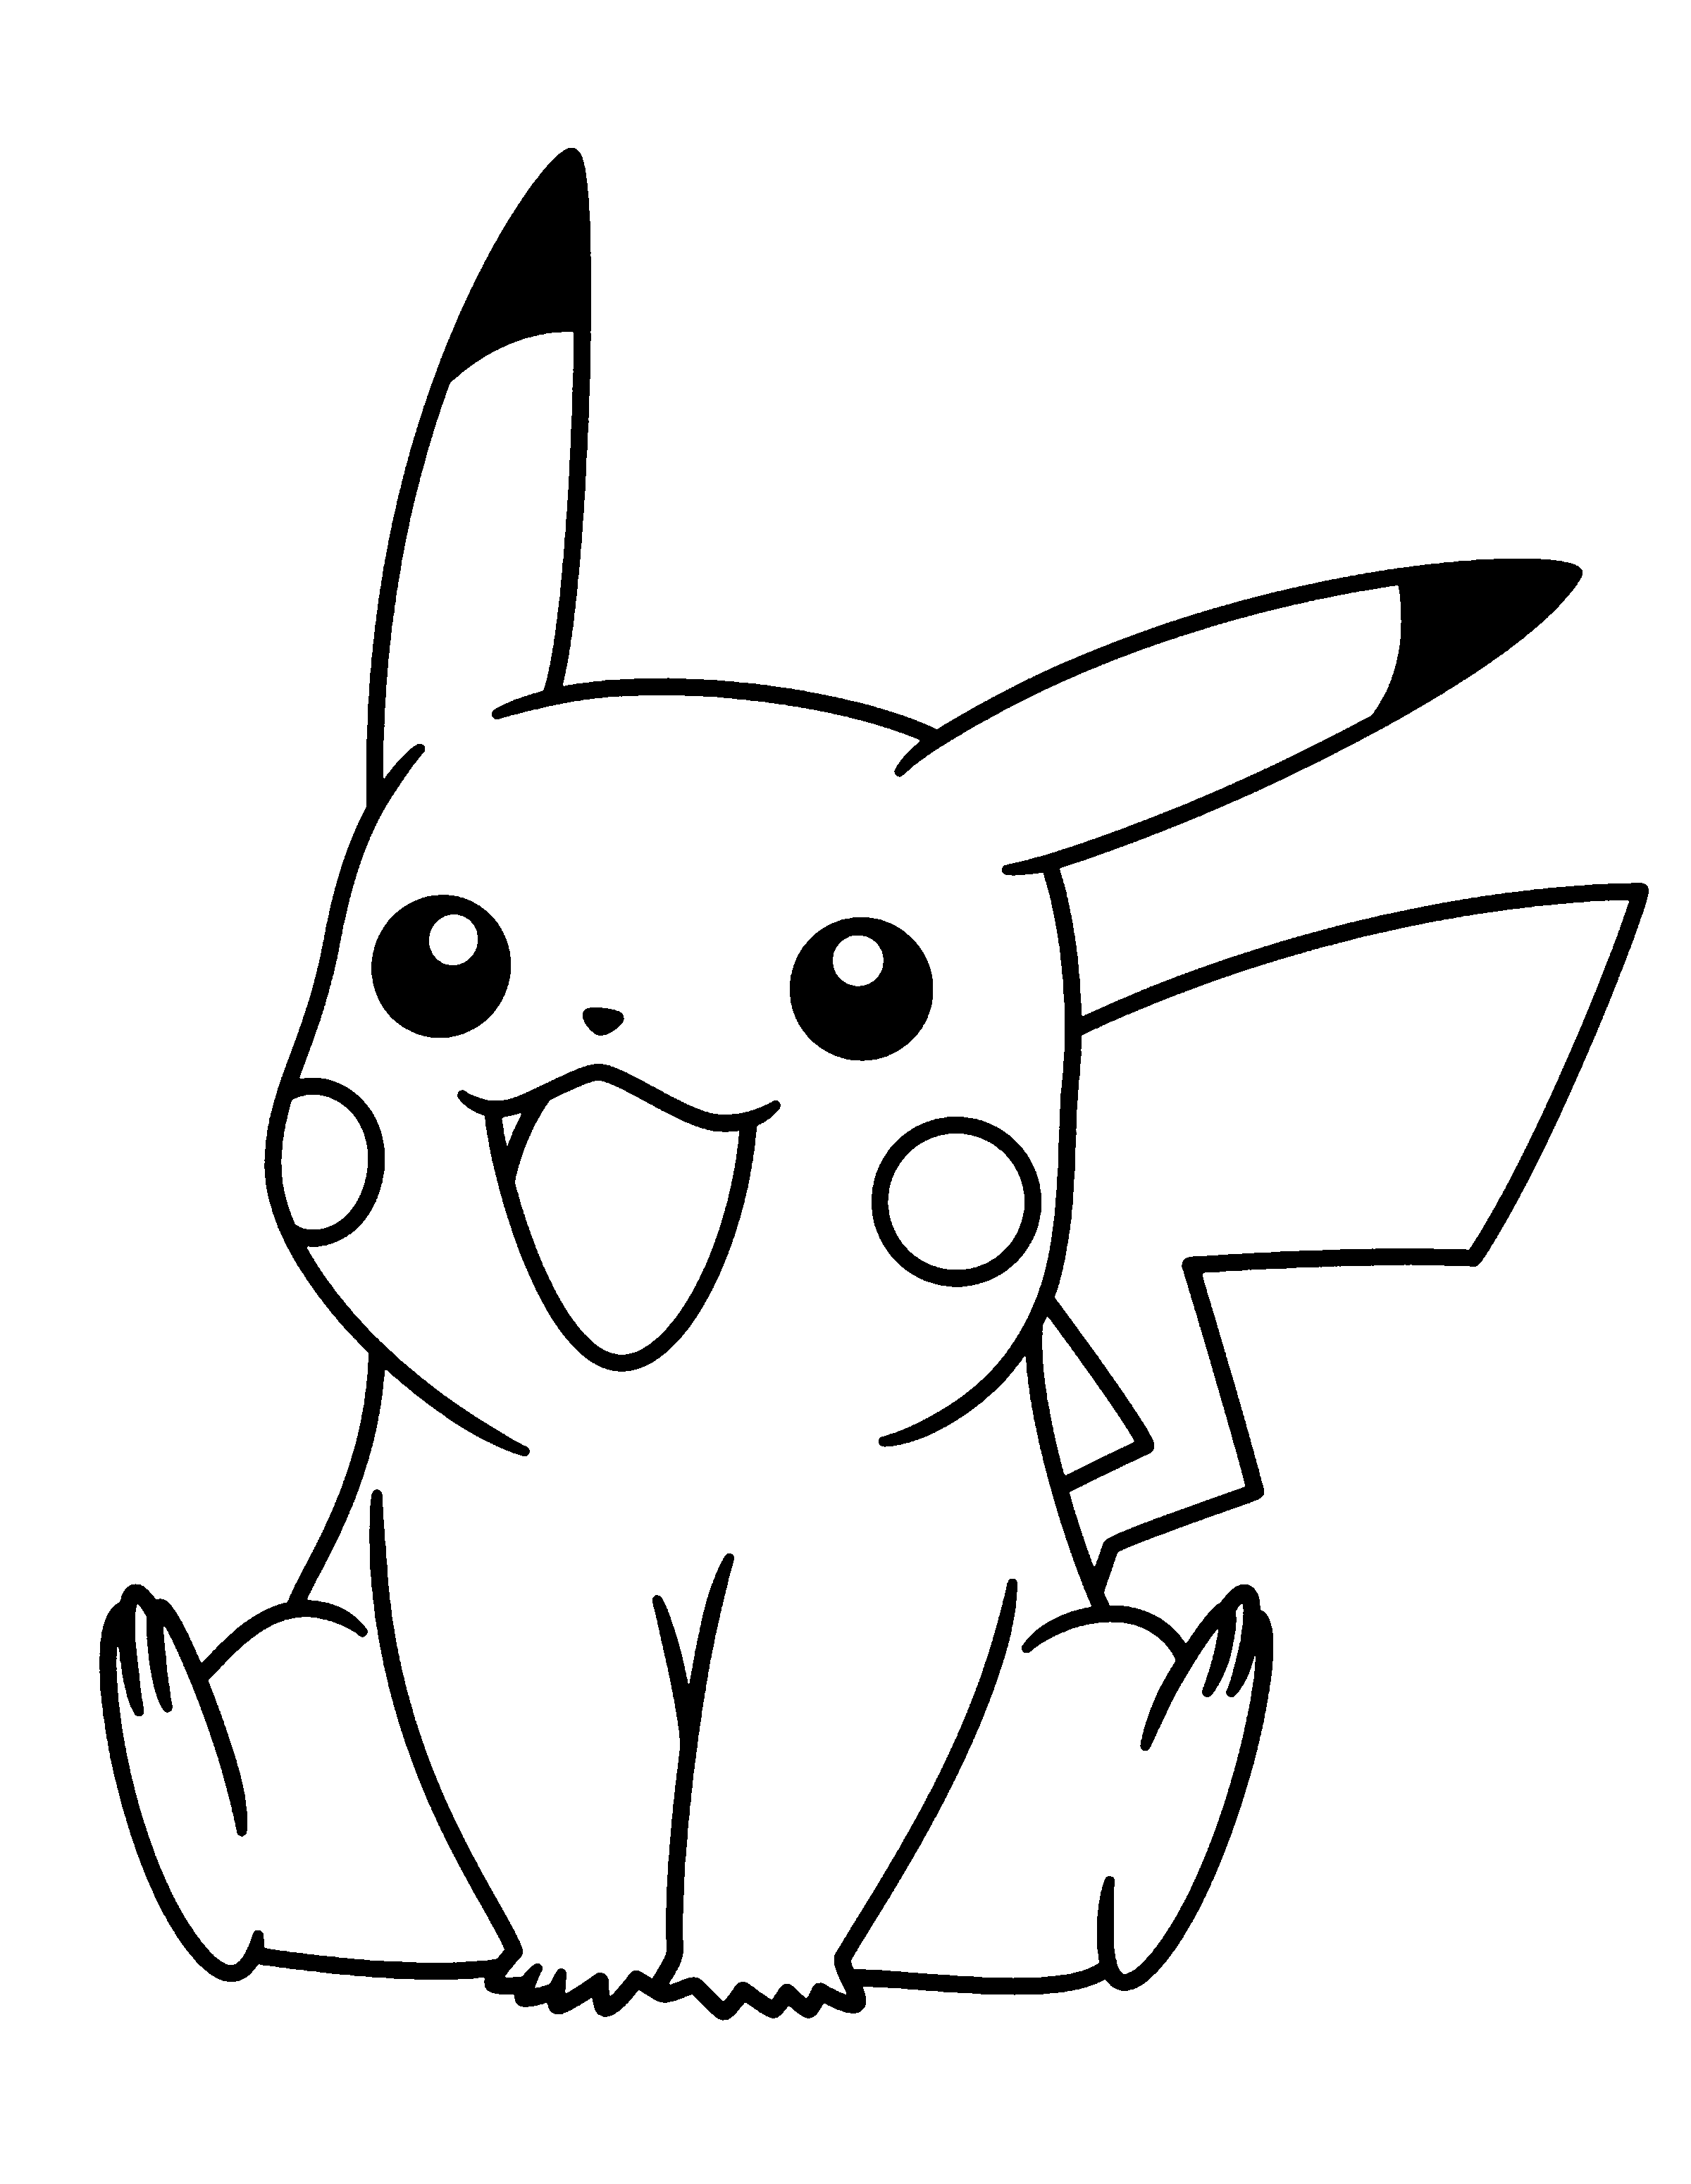 pokemon coloring pages for kids printable pokemon coloring pages join your favorite pokemon on an coloring pages printable kids pokemon for